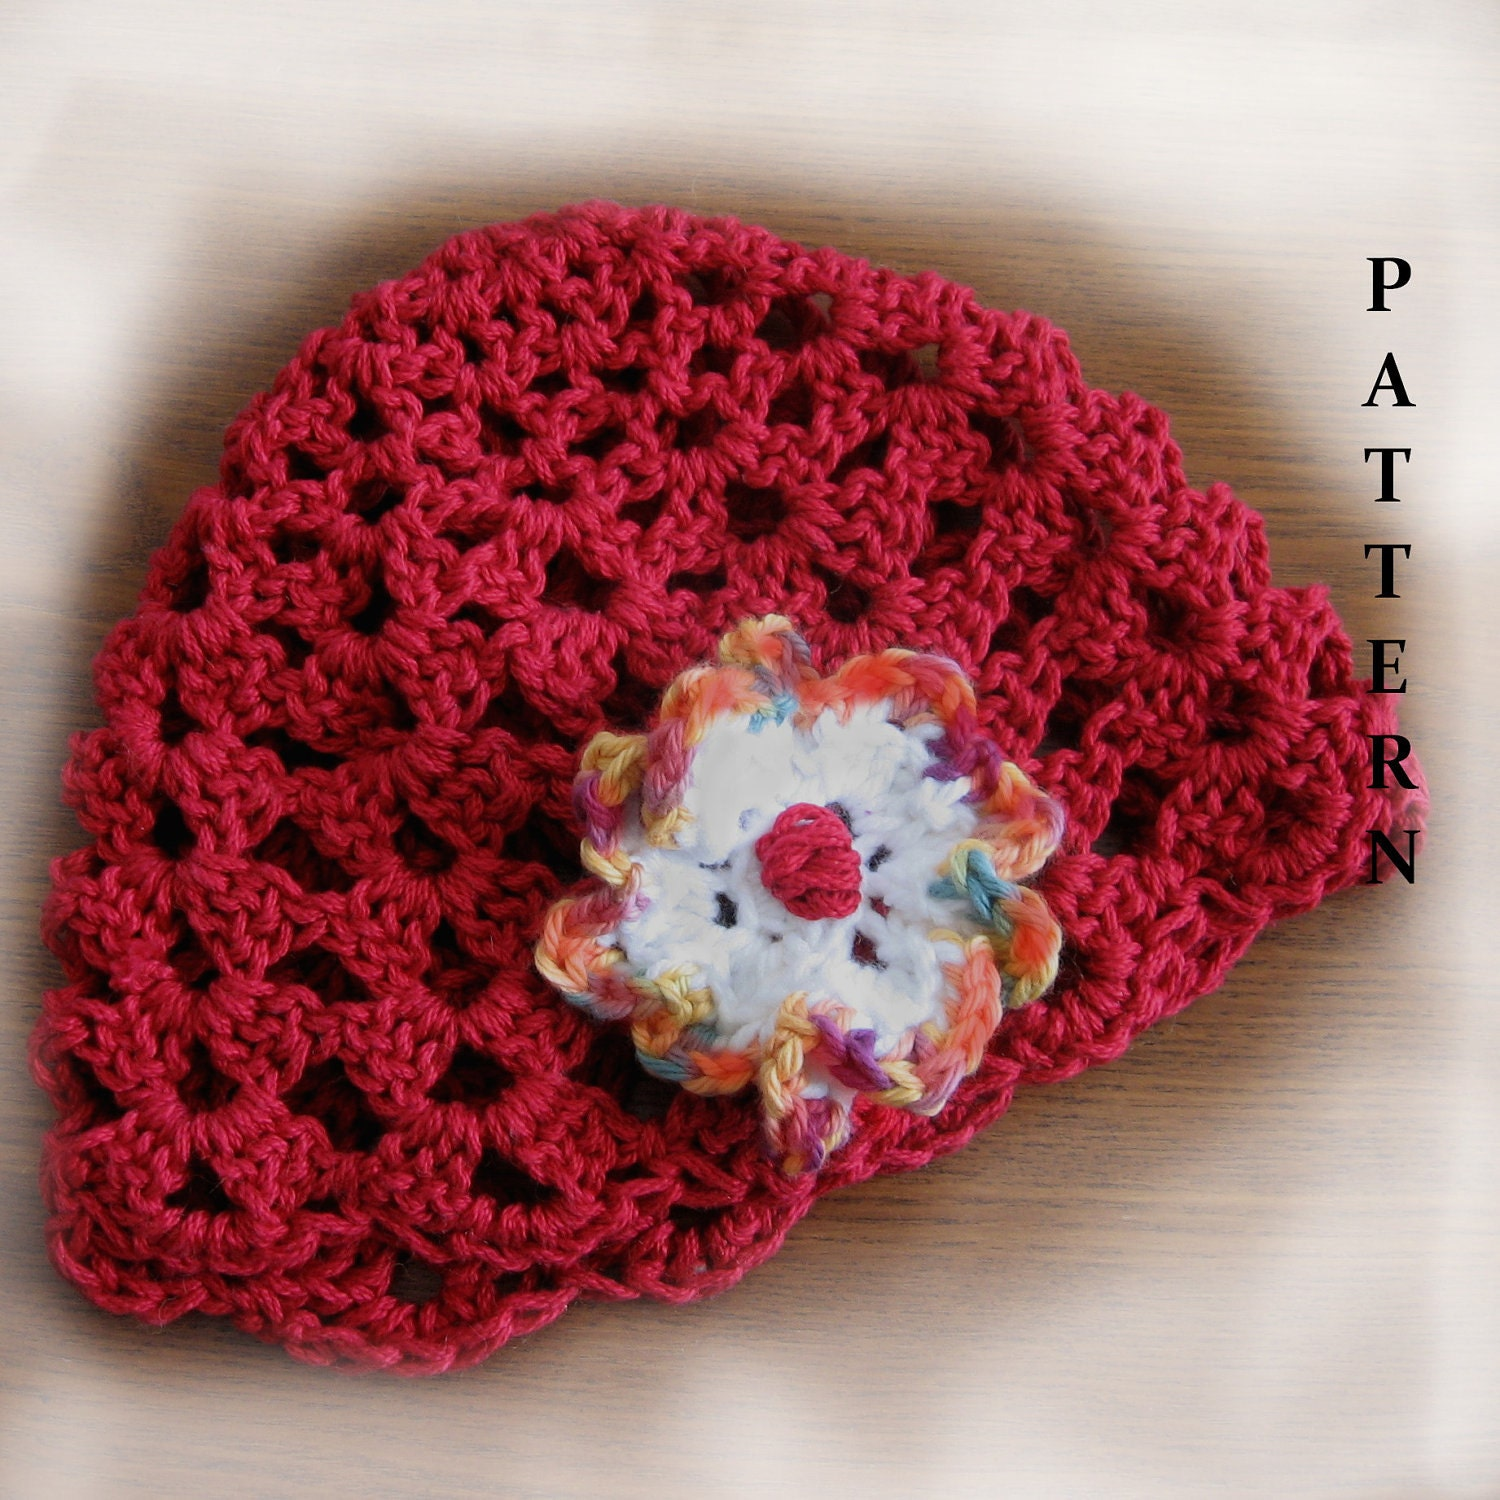 Crochet Shell Beanie Hat Pattern : Womens Crochet Hat Pattern Shell Beanie With by kalliedesigns